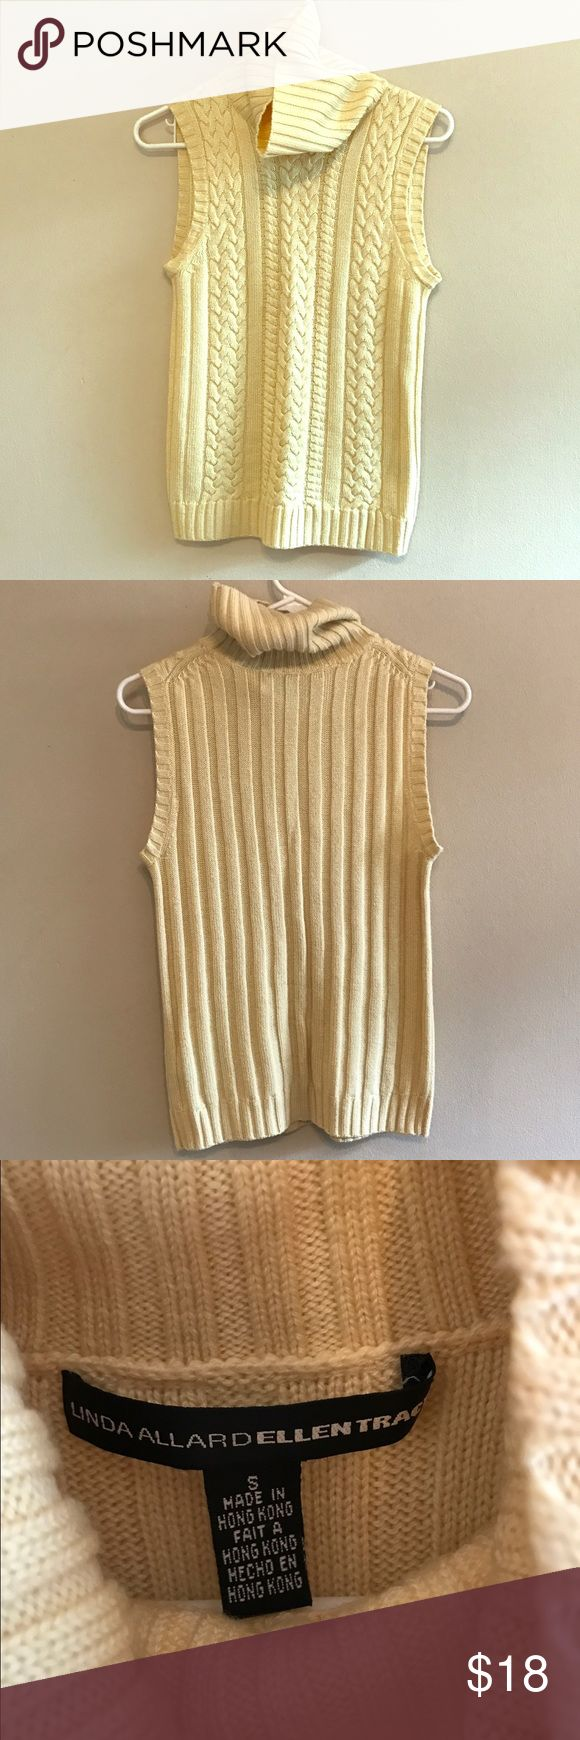 Ellen Tracy Pale Yellow Sweater S Classic sleeveless cable knit turtleneck sweater from Linda Allard Ellen Tracy! Excellent condition, no stains, no pilling, no holes! Ellen Tracy Sweaters Cowl & Turtlenecks